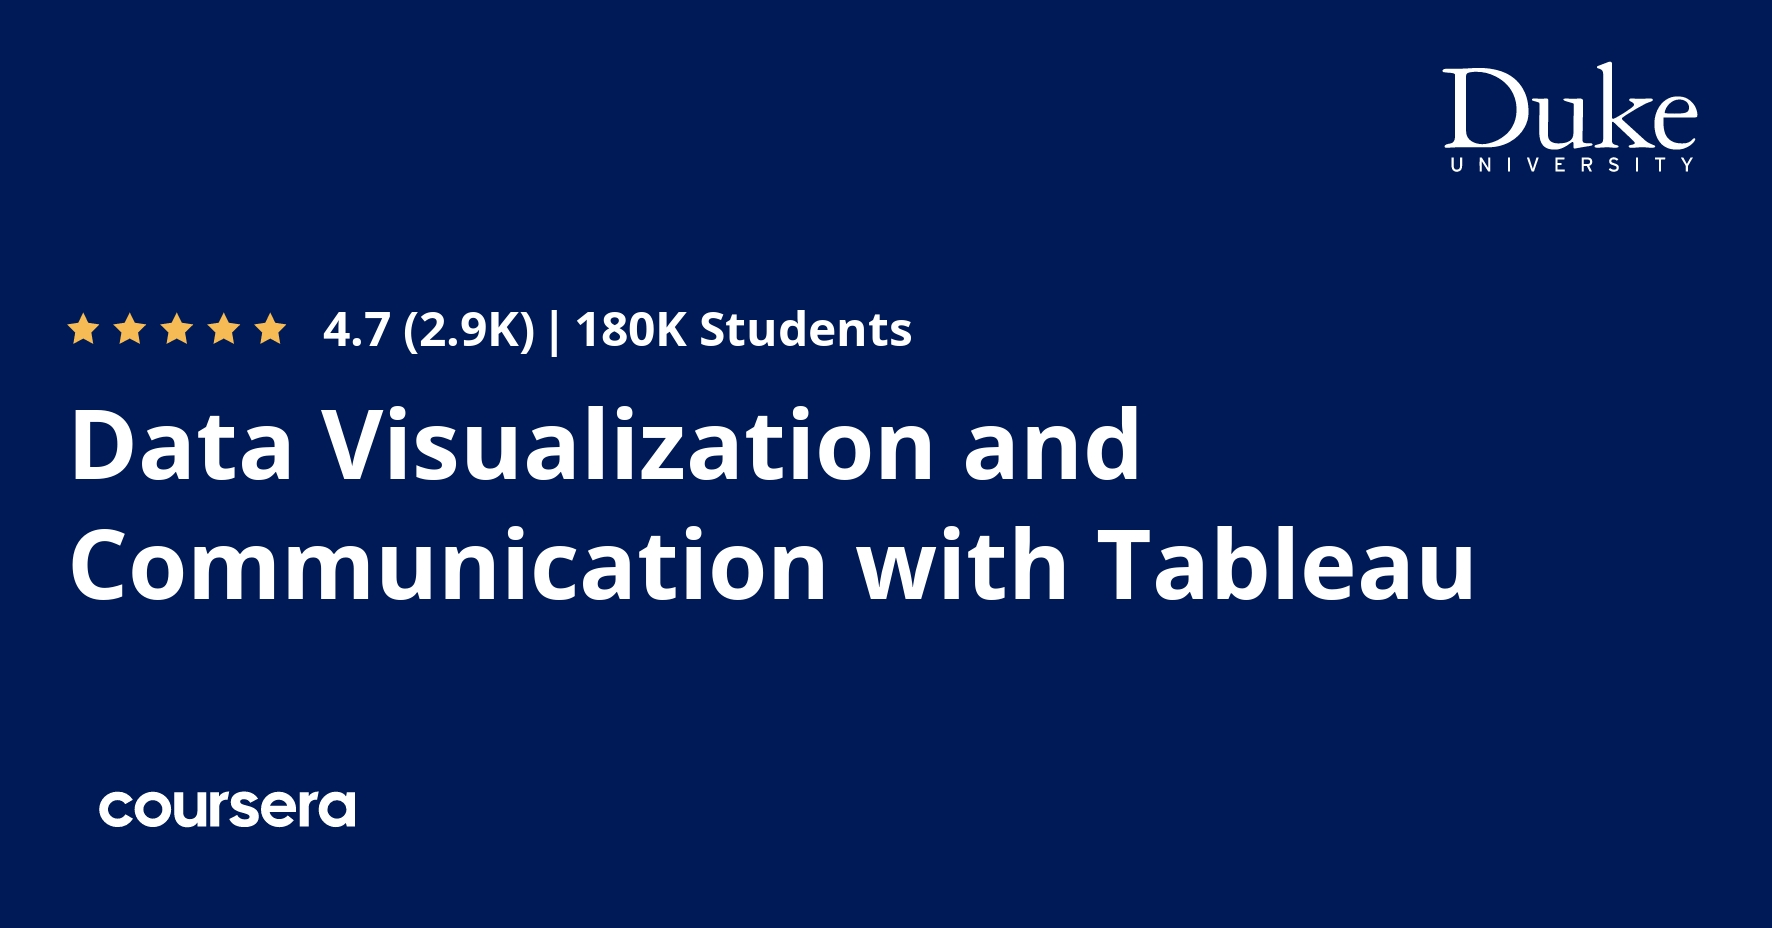 Data Visualization and Communication with Tableau